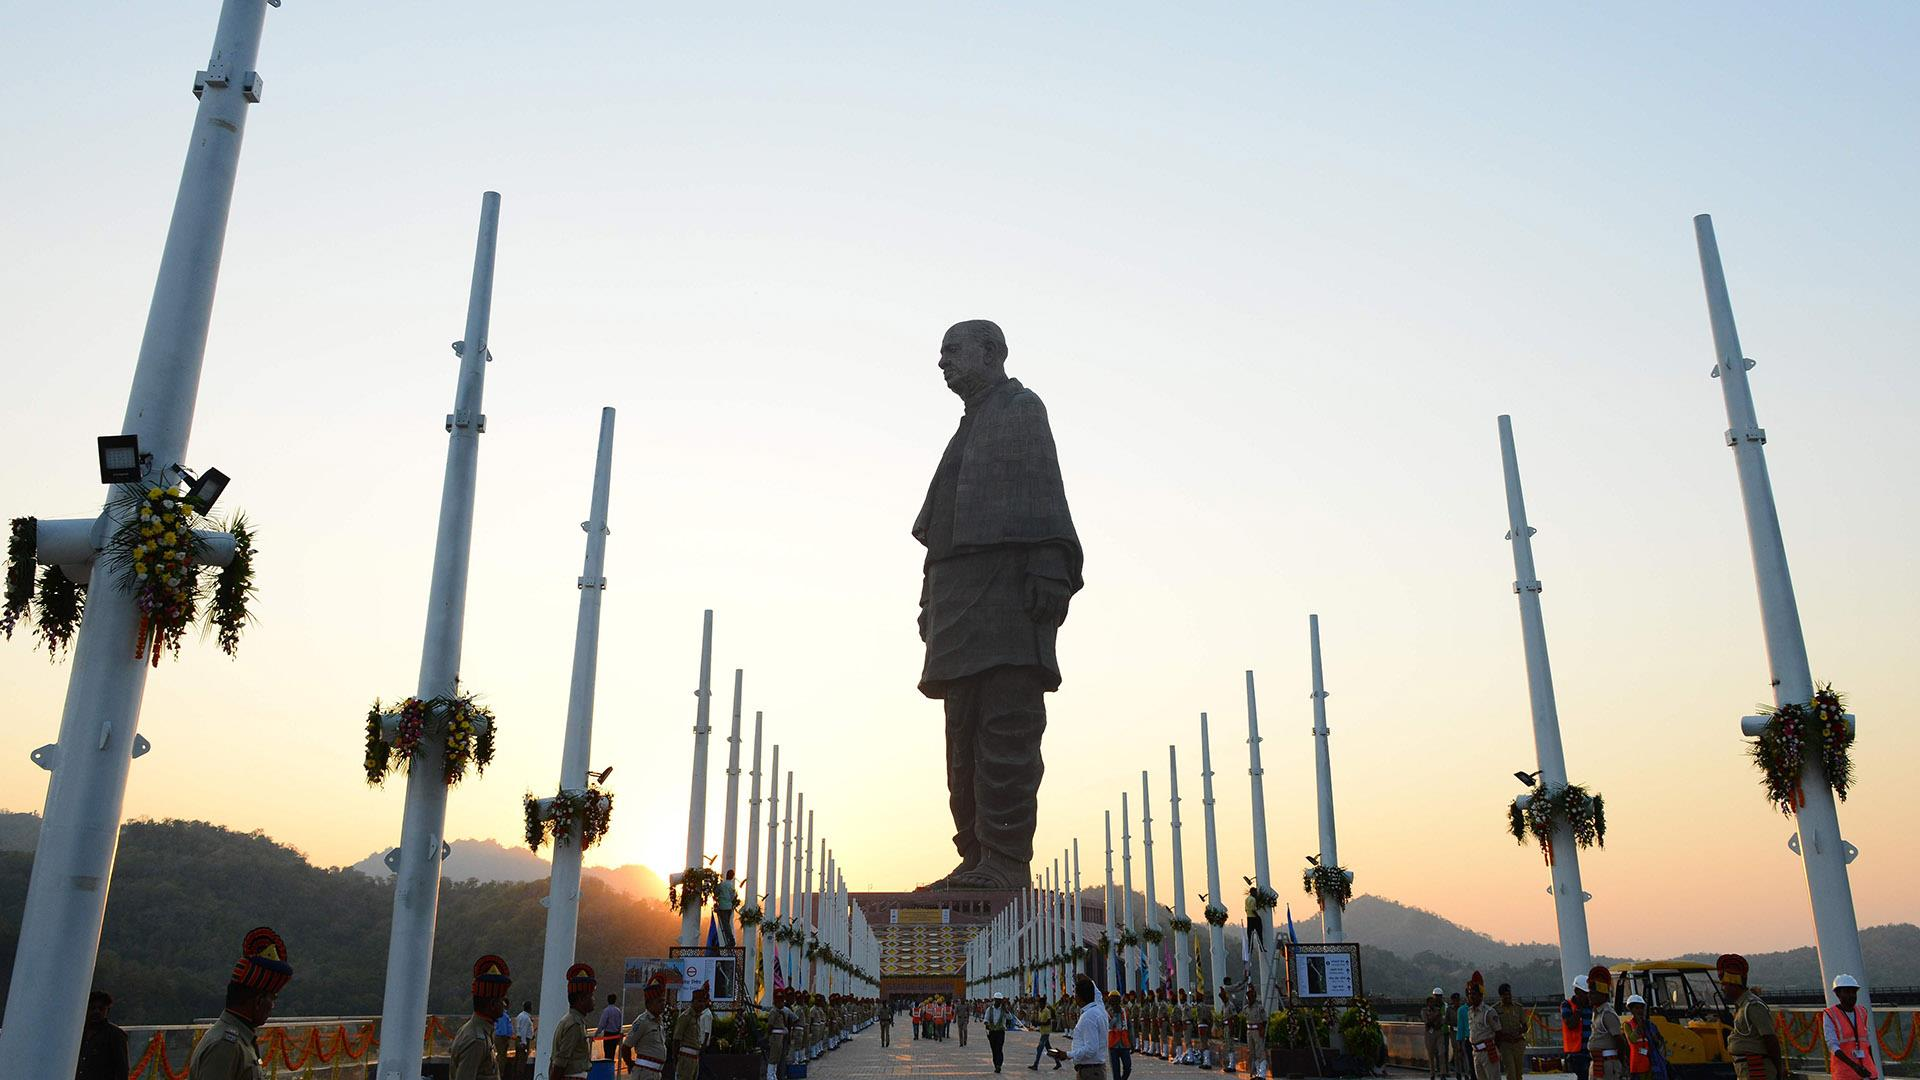 India unveils world's tallest statue, twice the size of the Statue of Liberty